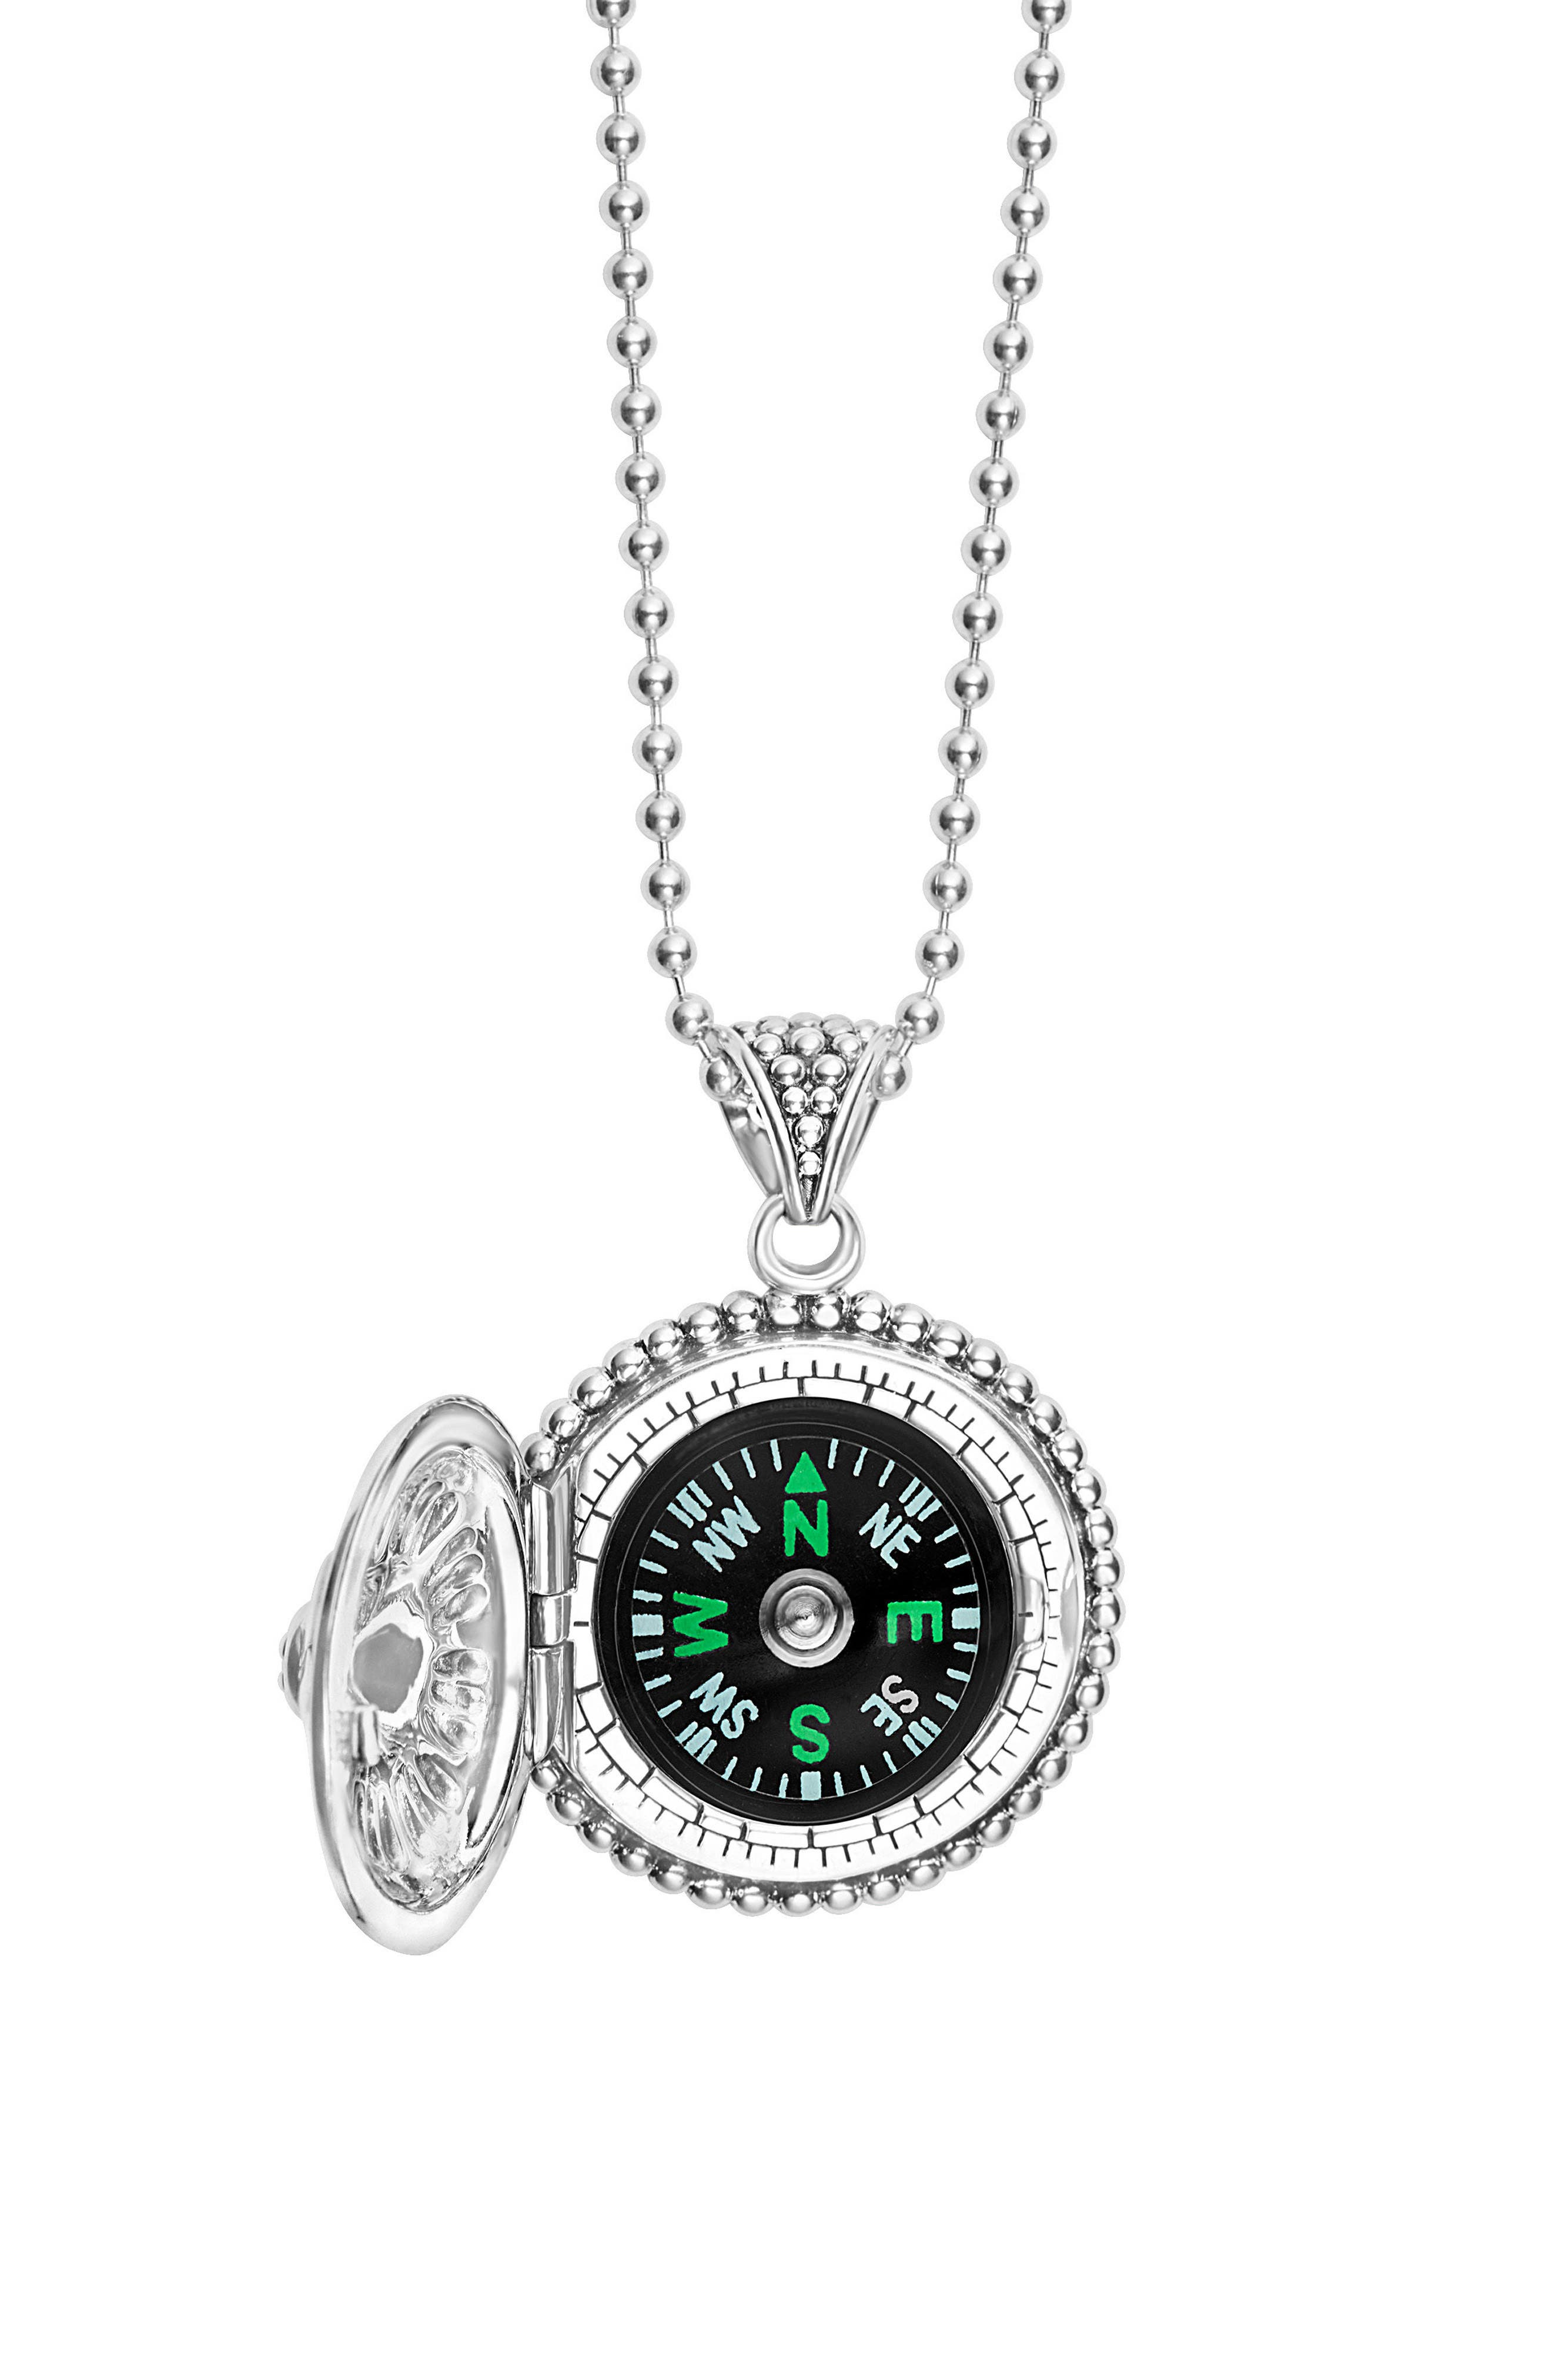 Signature Caviar Compass Pendant Necklace,                             Alternate thumbnail 4, color,                             SILVER